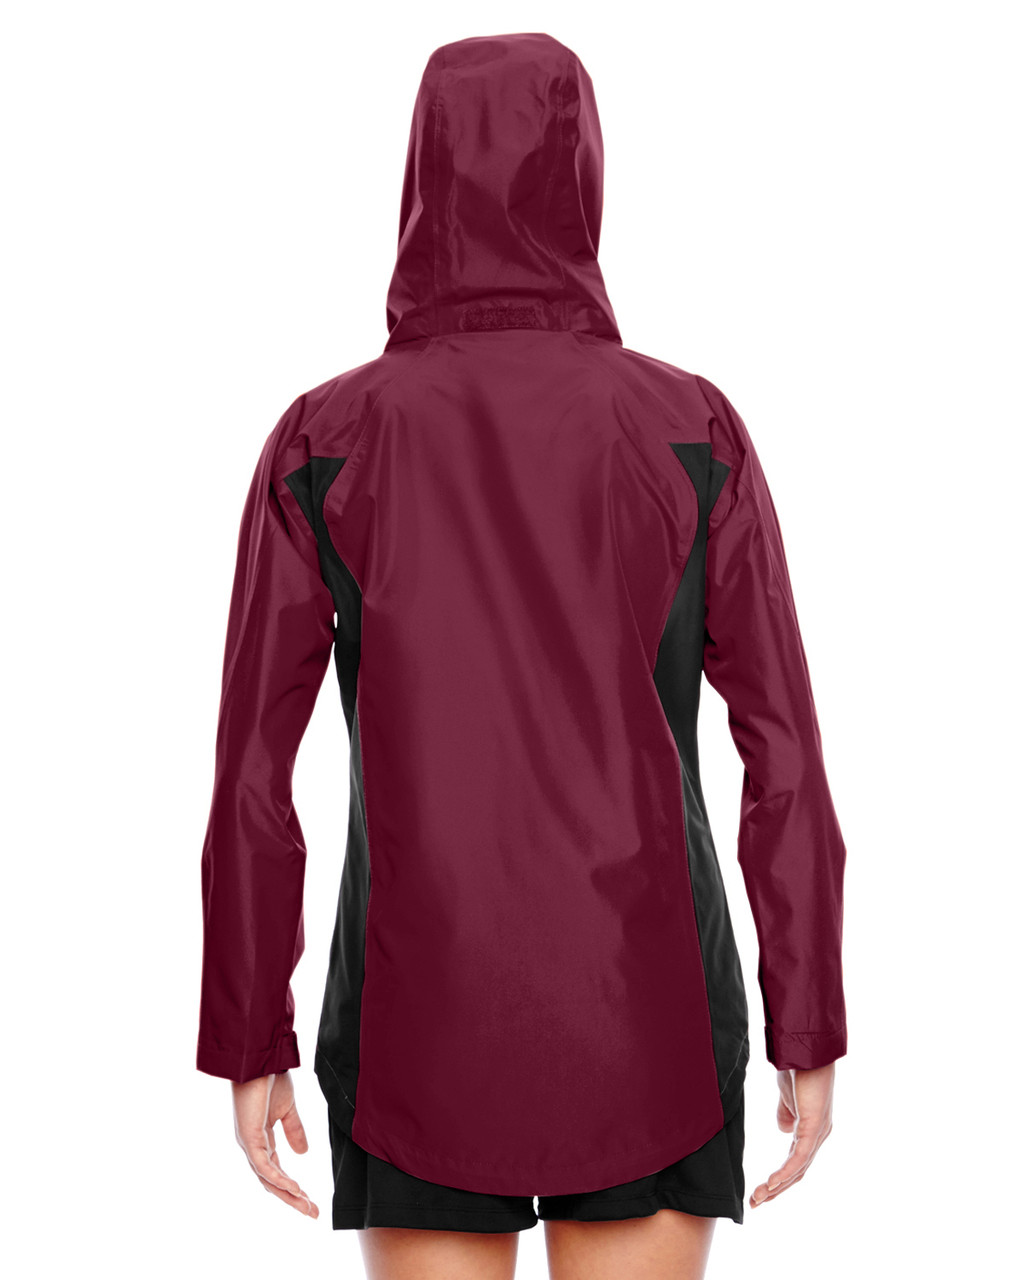 Sport Maroon - Back, TT86W Team 365 Dominator Waterproof Jacket